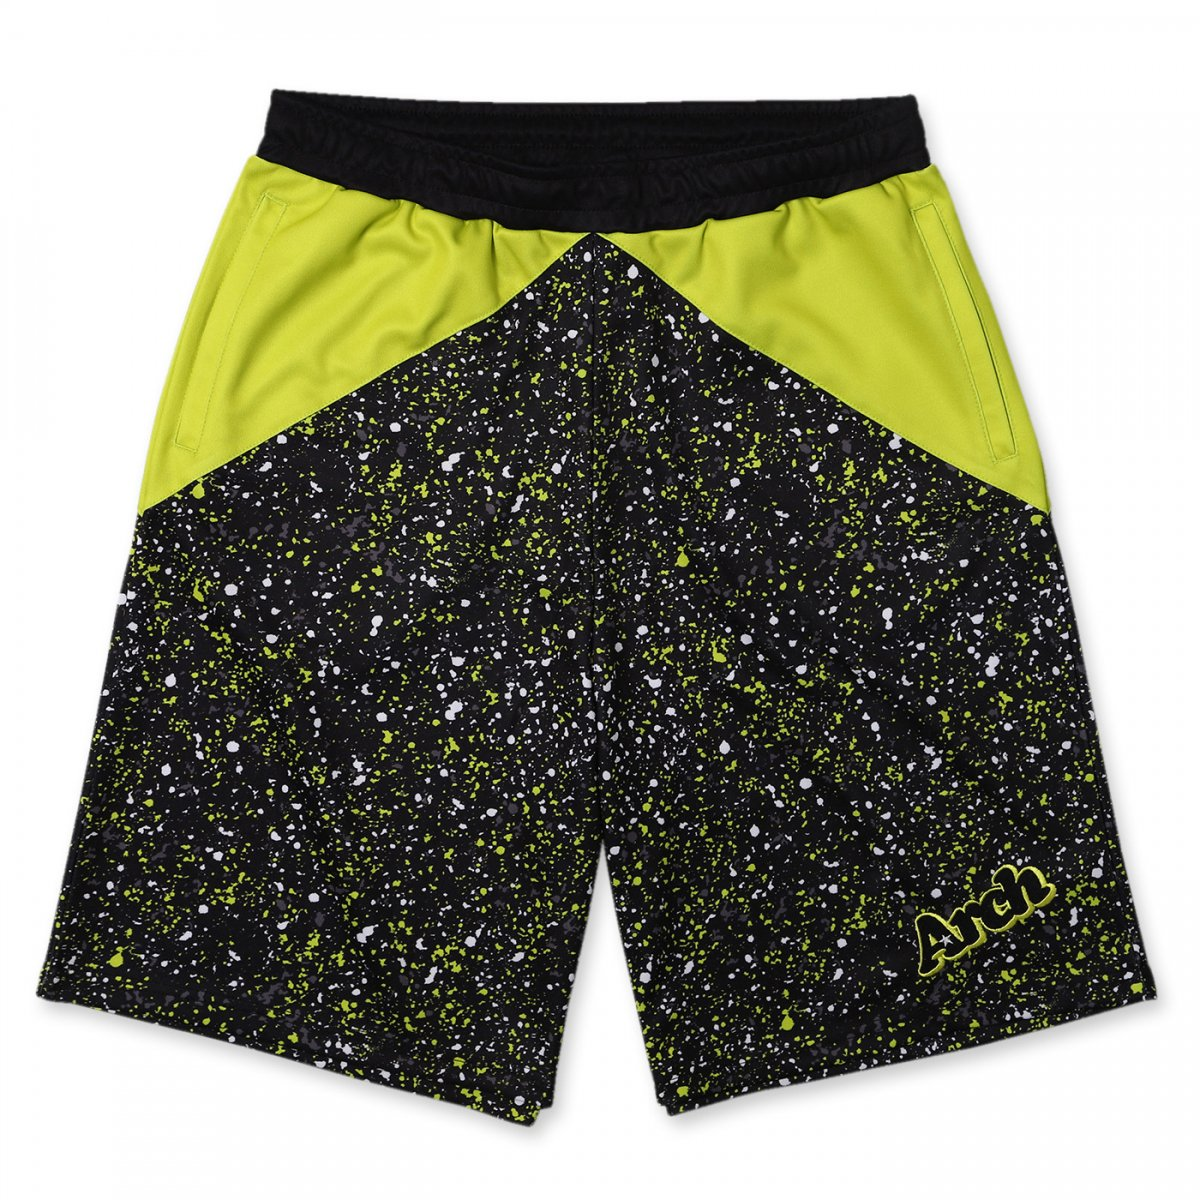 paint splatter shorts【lime yellow/black】